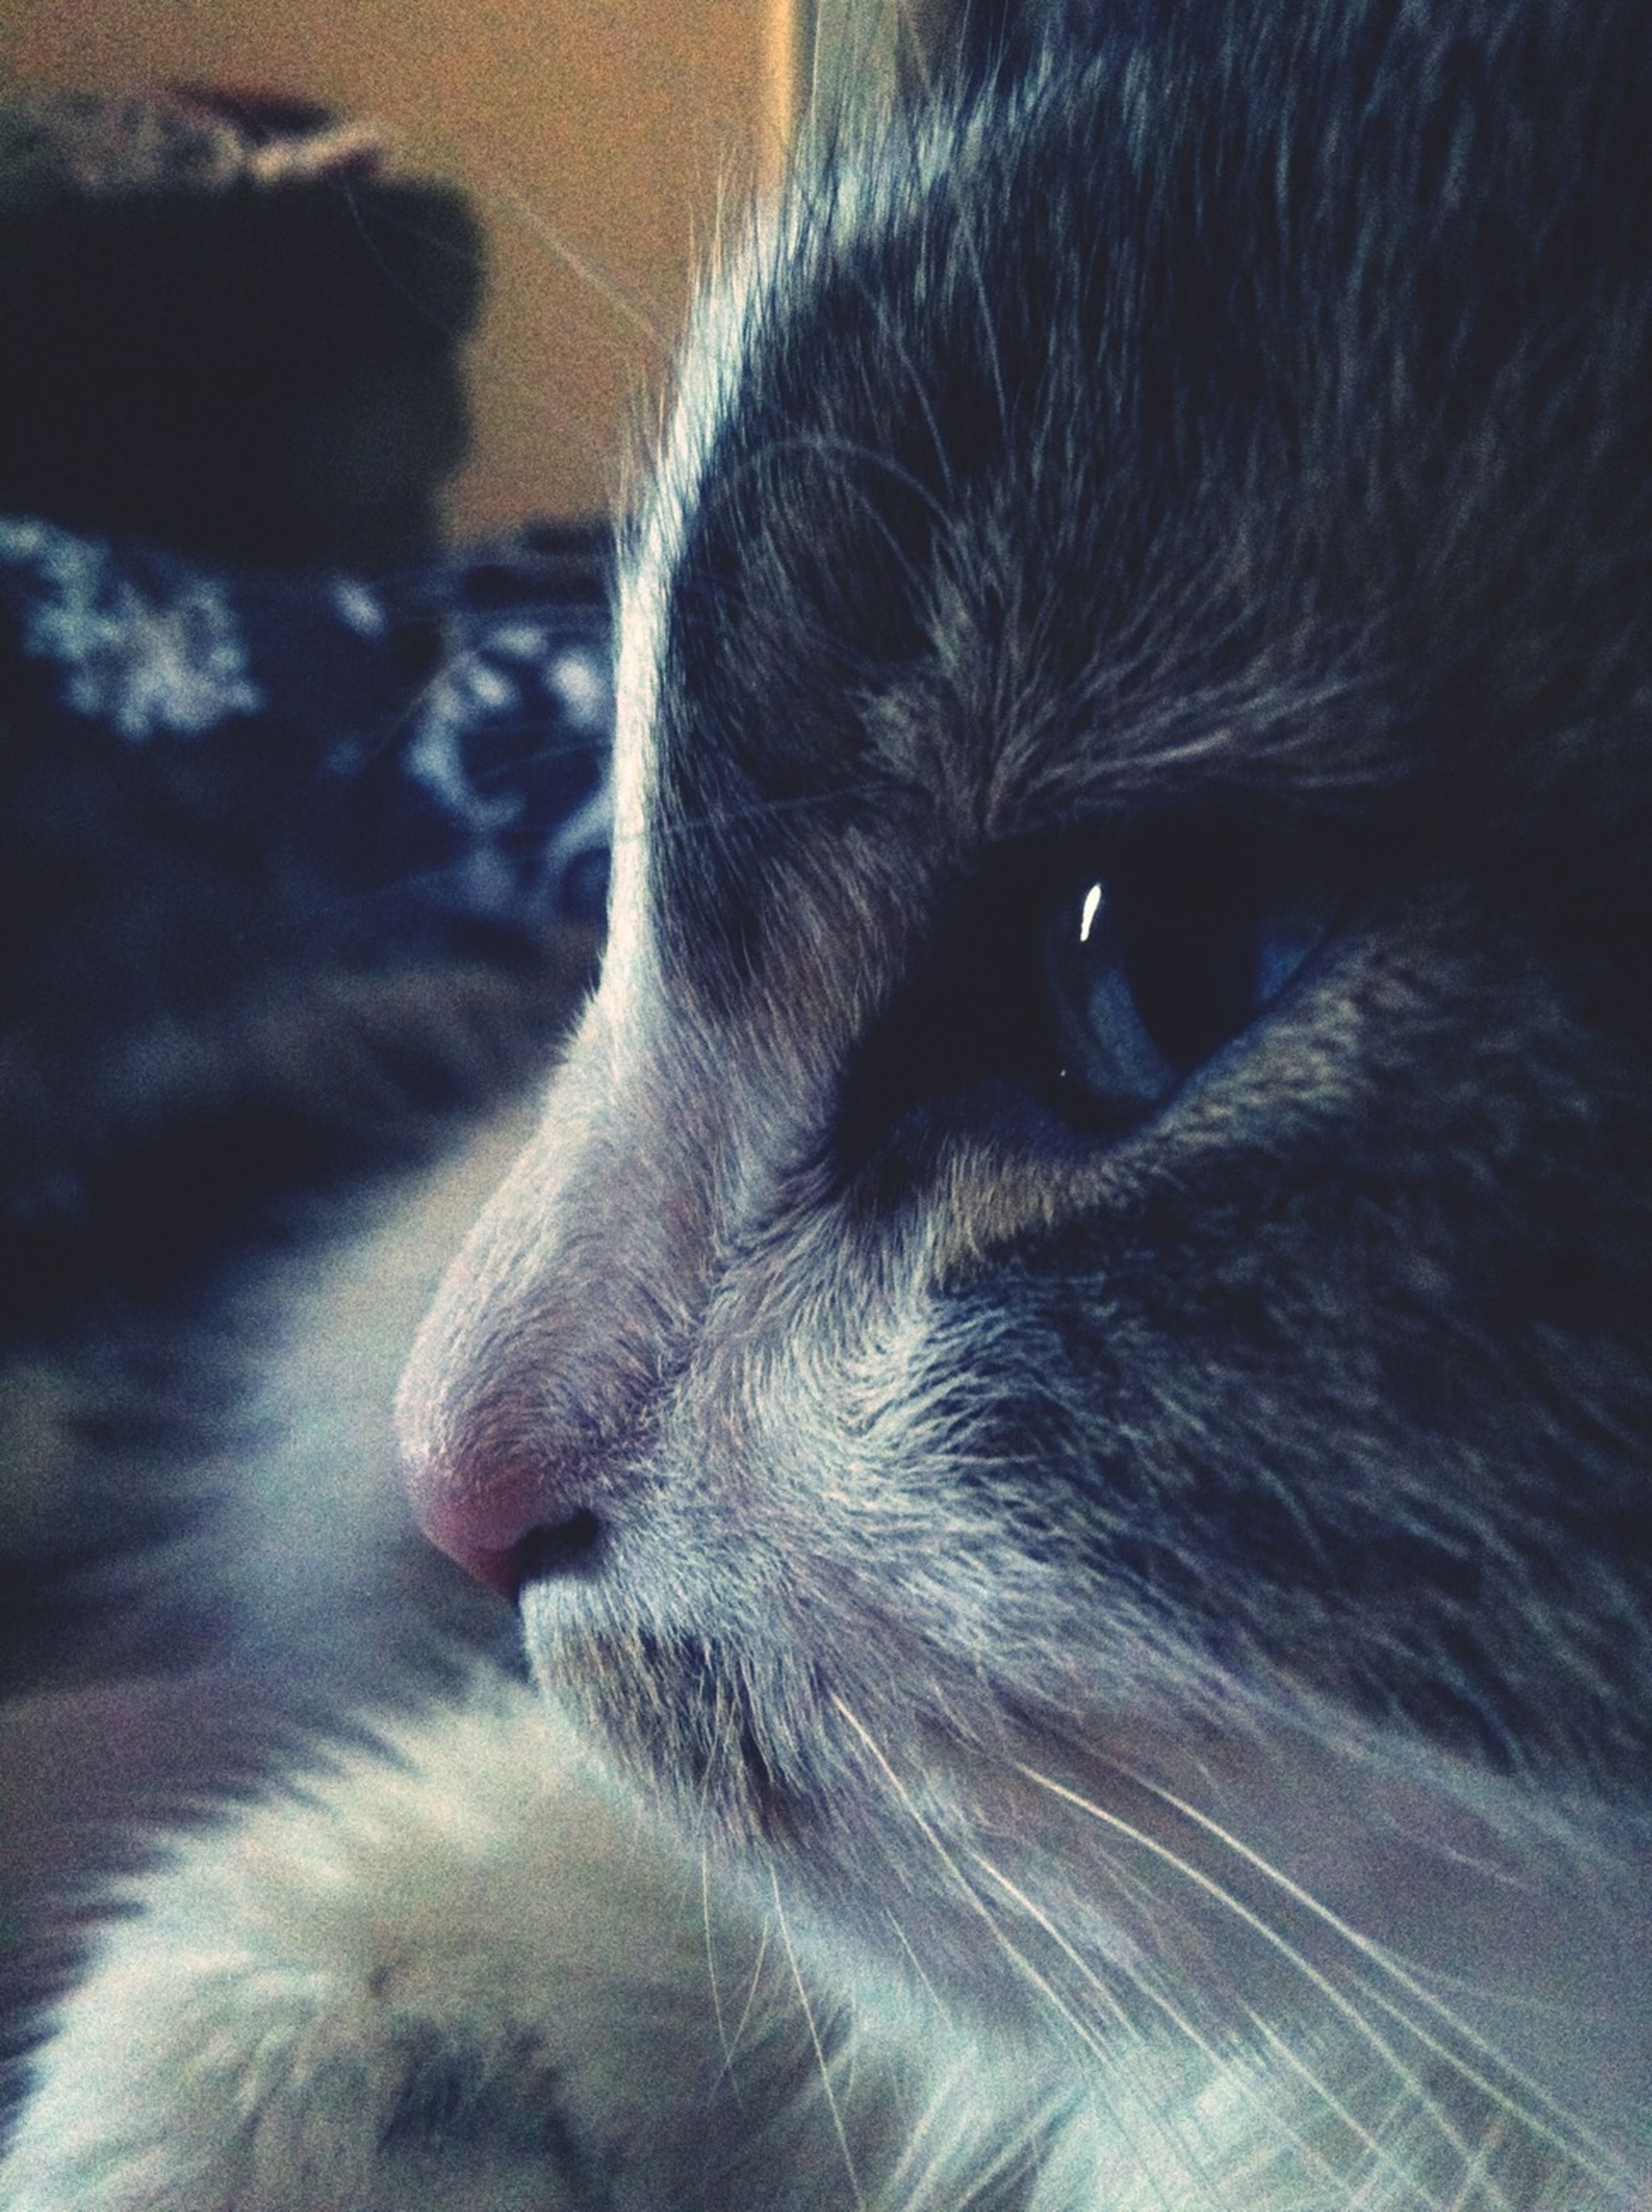 one animal, pets, animal themes, domestic animals, mammal, animal head, close-up, dog, animal body part, domestic cat, indoors, cat, whisker, no people, animal hair, looking away, relaxation, part of, feline, focus on foreground